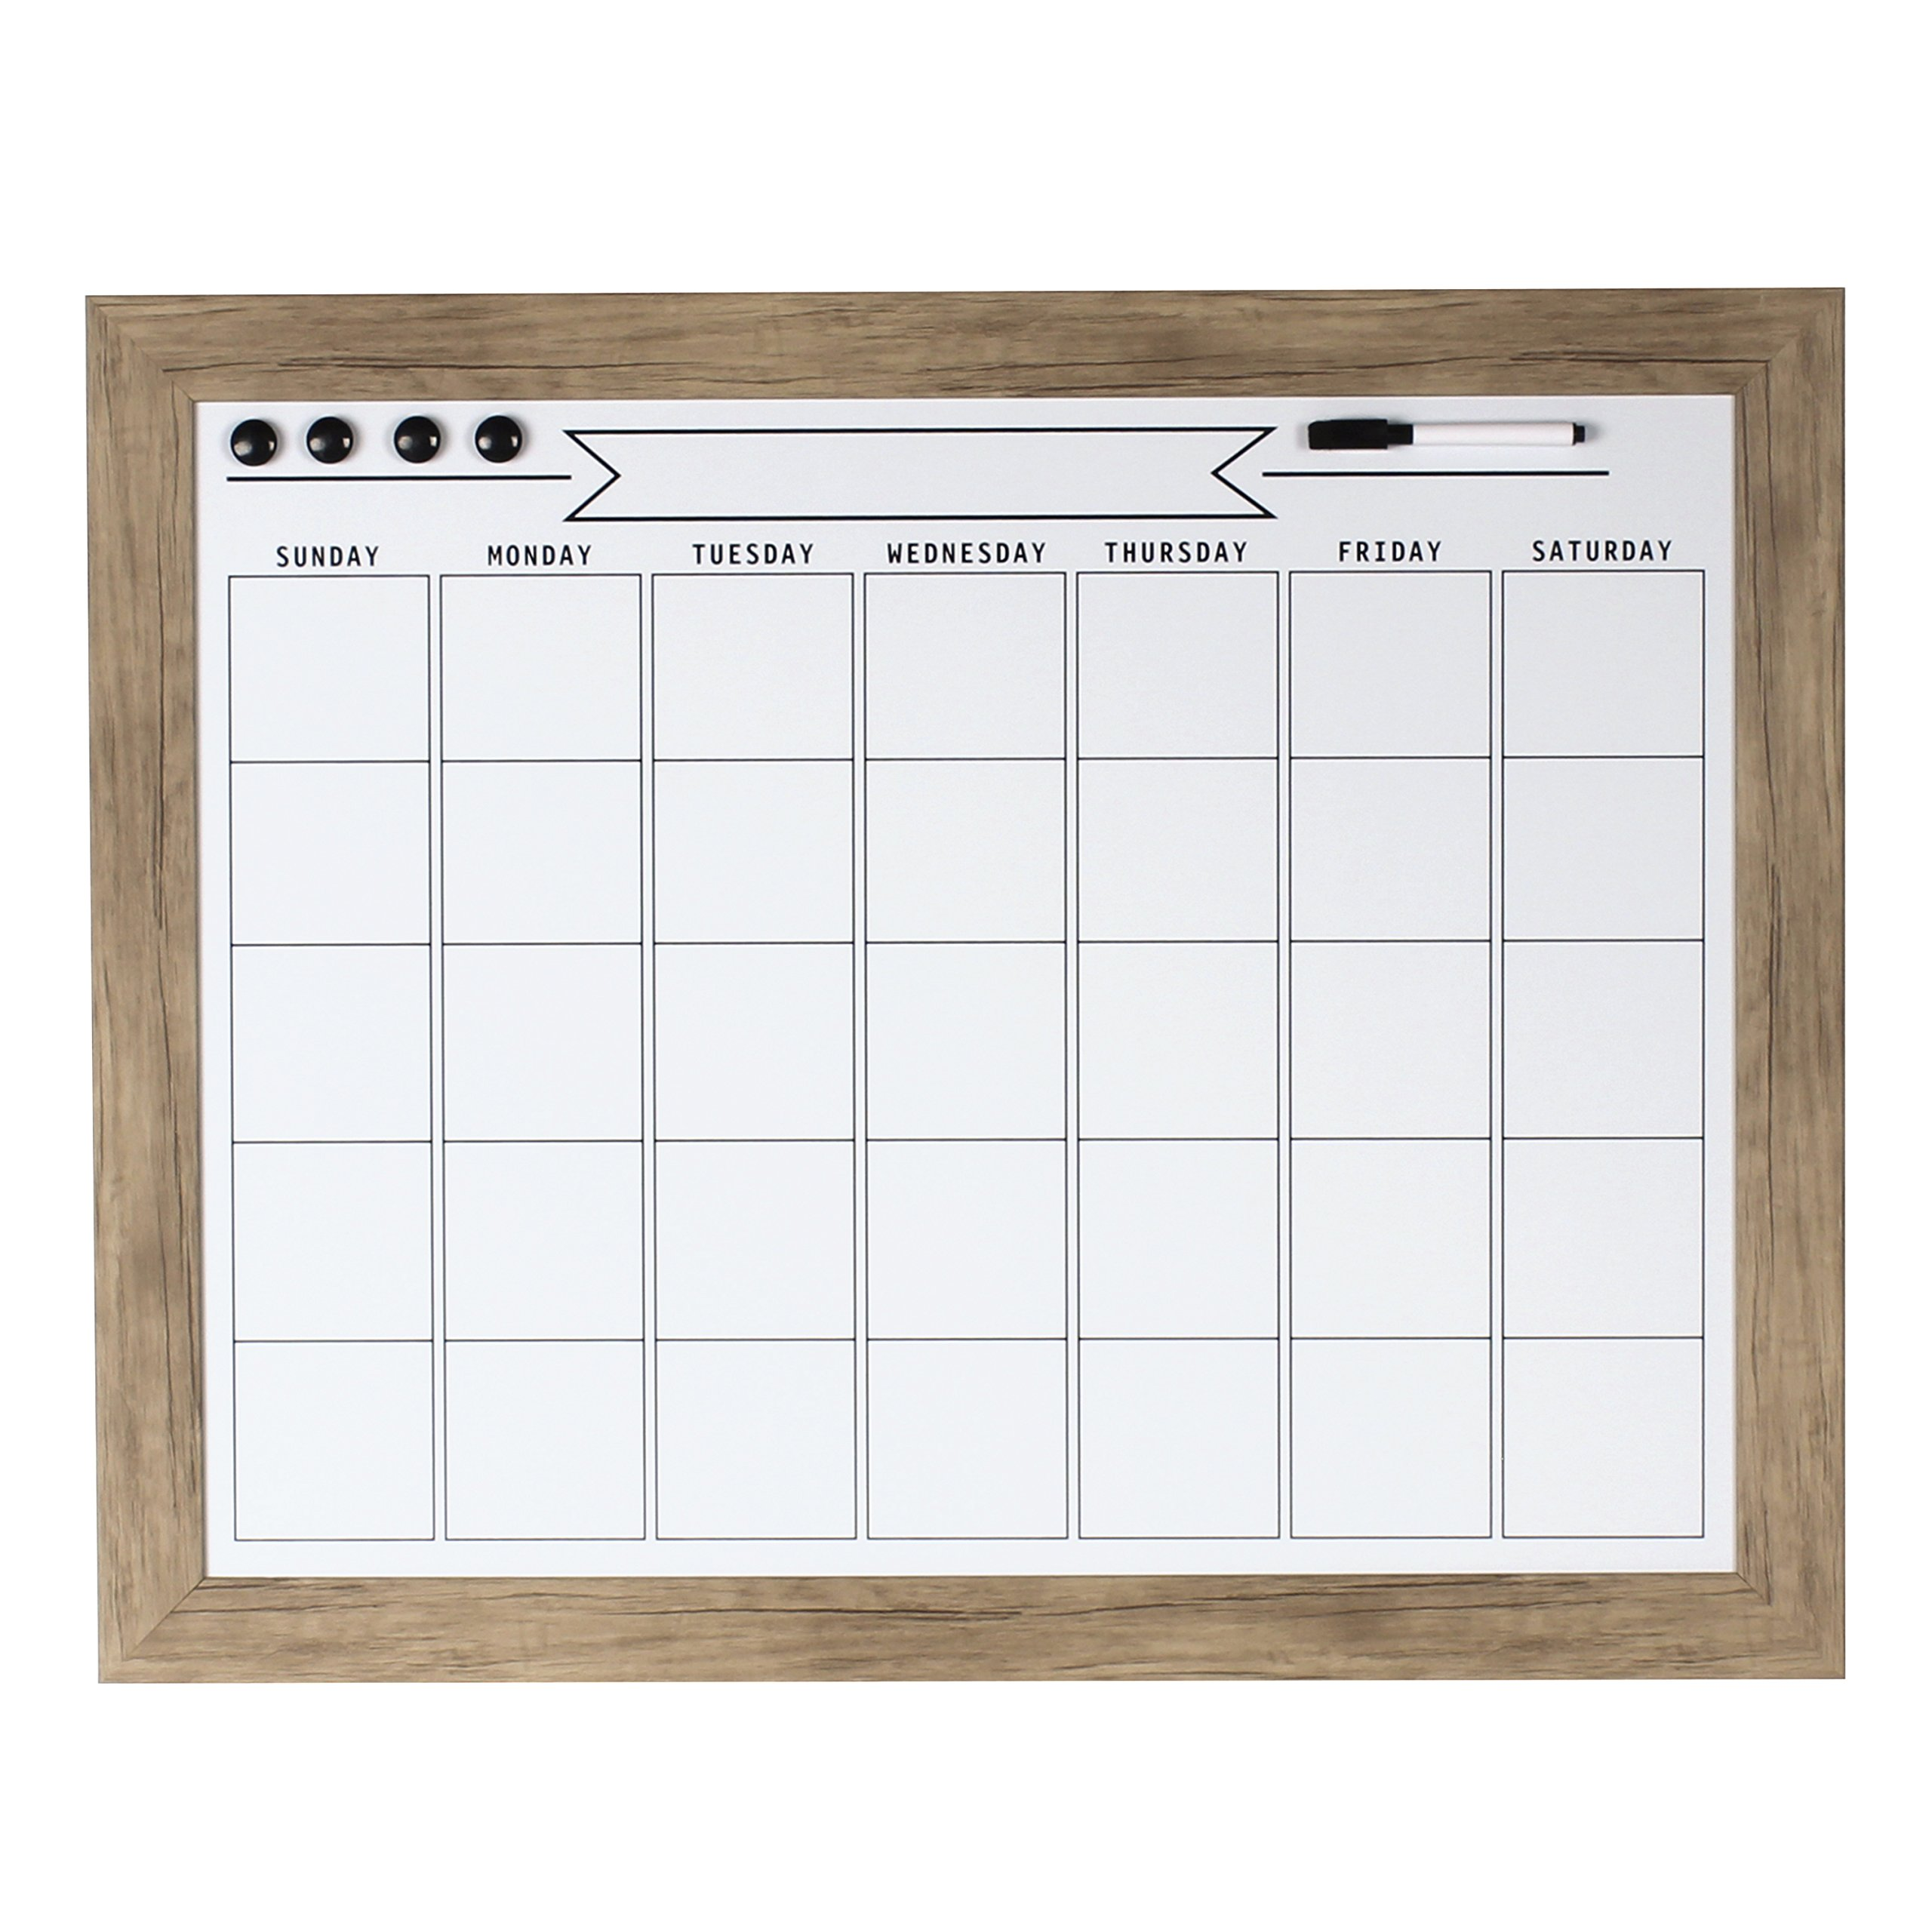 DesignOvation Beatrice Framed Magnetic Dry Erase Monthly Calendar, 23x29, Rustic Brown by DesignOvation